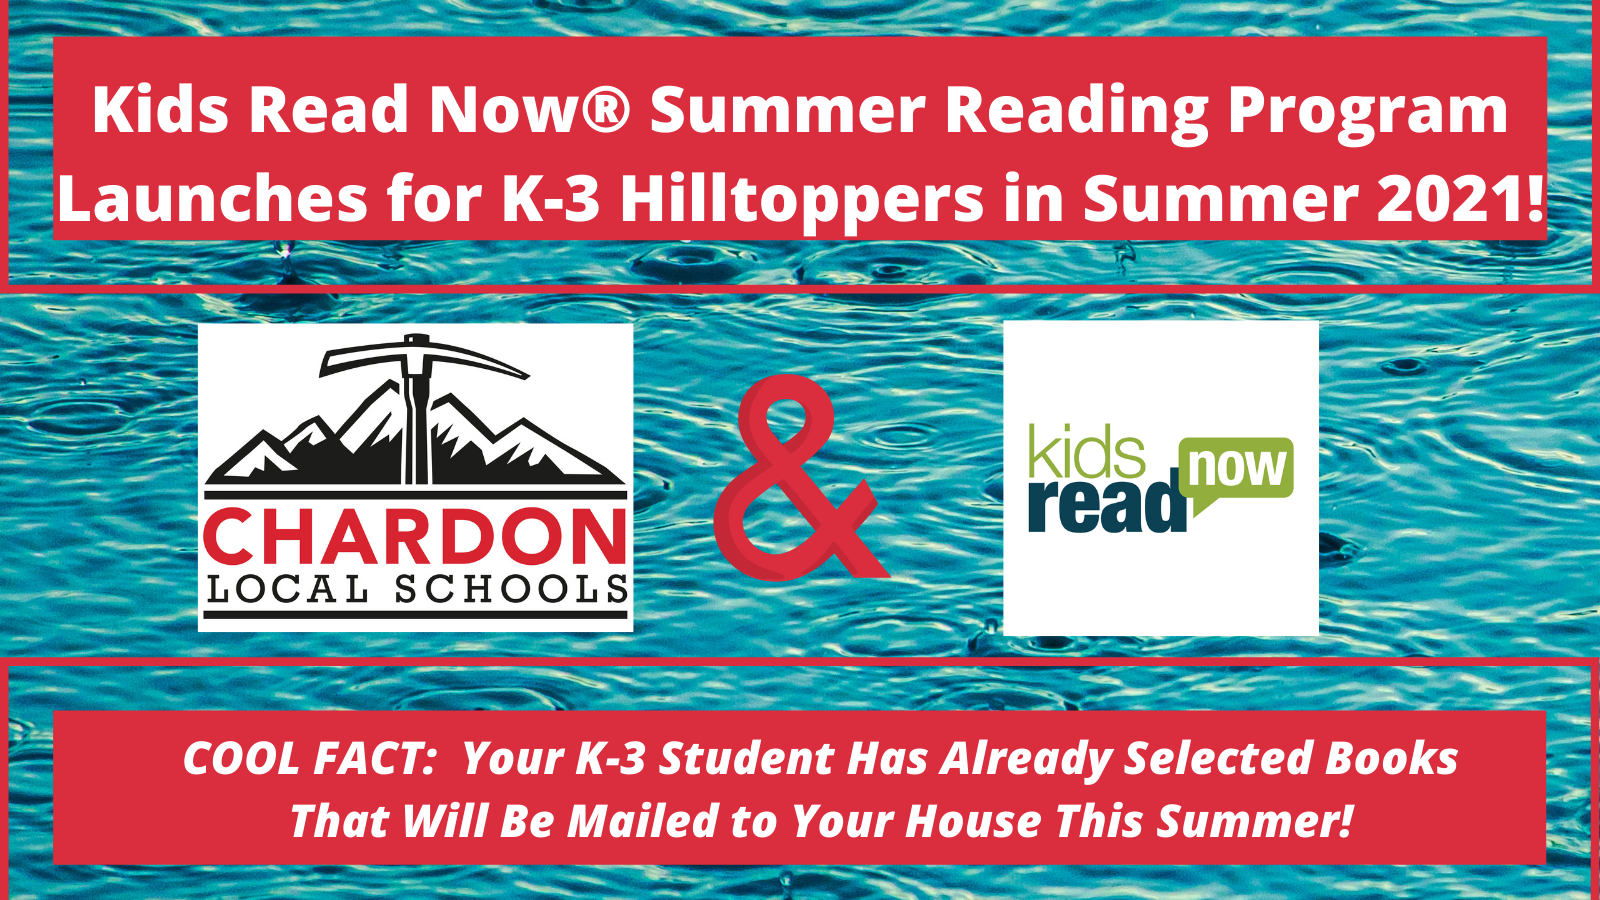 Blue Water Background featuring Chardon Local Schools logo and Kids Read Now logo with verbiage:  Kids Read Now® Summer Reading Program Launches for K-3 Hilltoppers in Summer 2021!  Cool Fact:  Your K-3 Student Has Already Selected Books That Will Be Mailed to Your House This Summer!